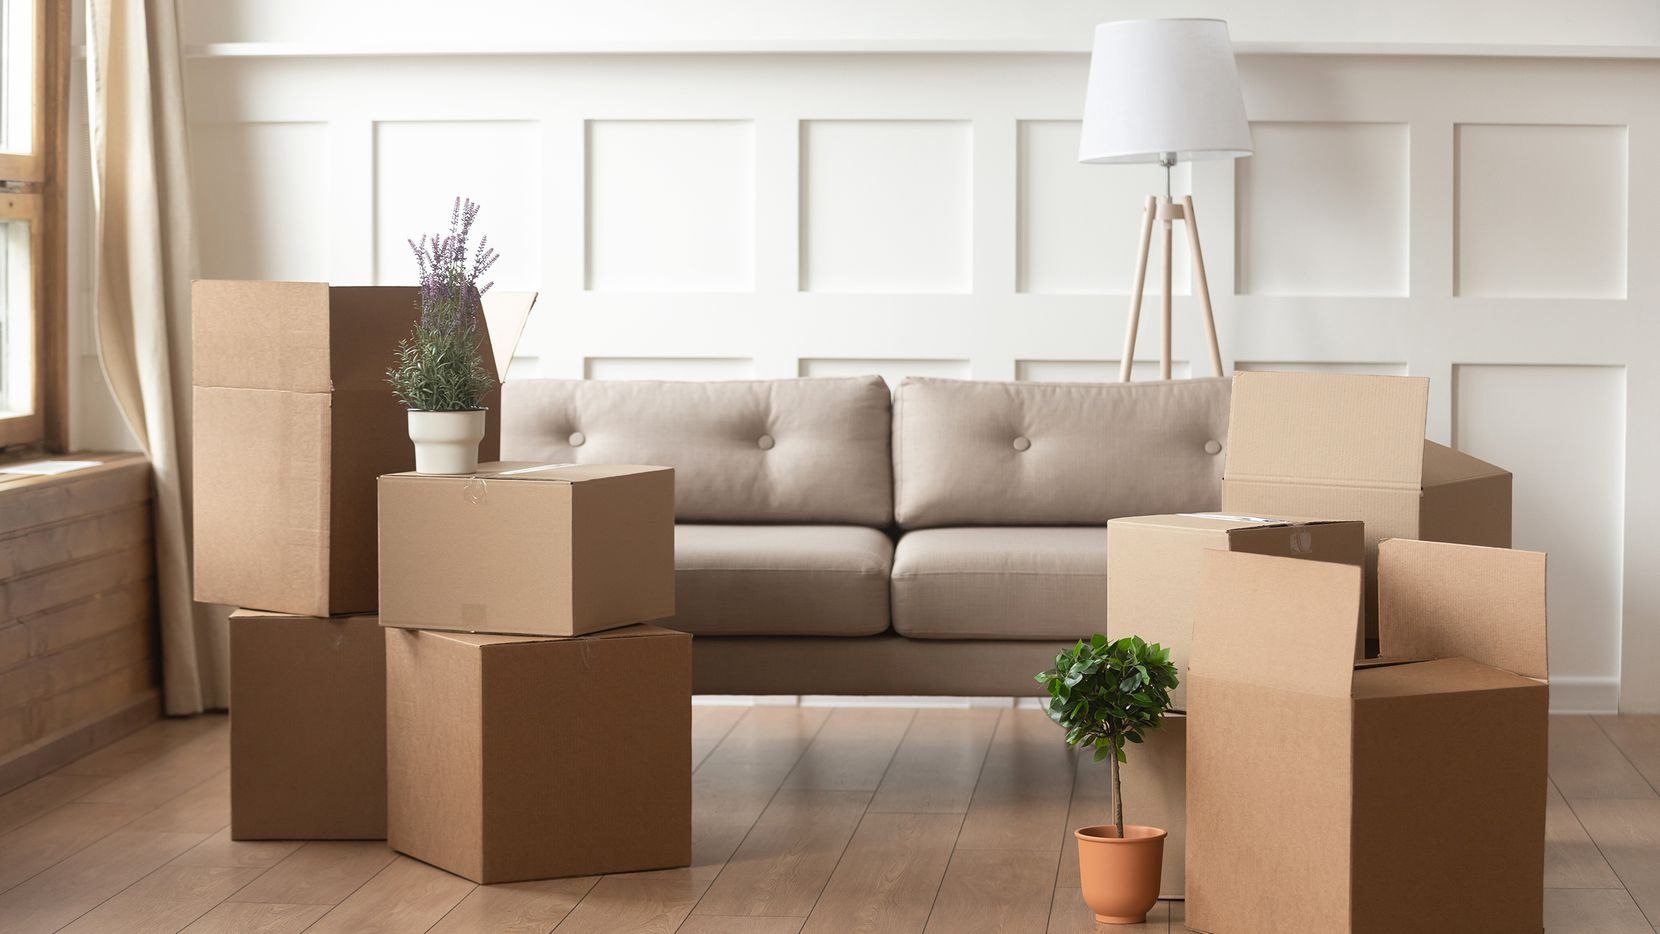 Prospective buyers keep flooding into Dallas, so if you want to sell your home, make sure it's move-in ready.